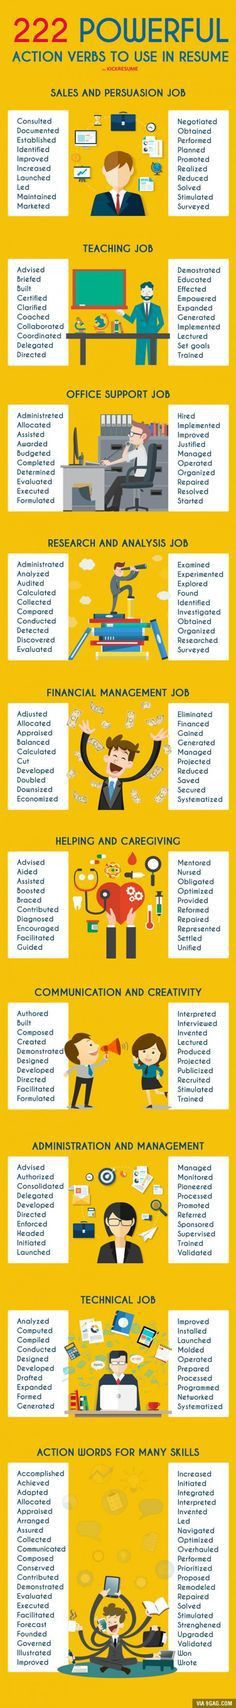 20 Resume Power Words -- INFOGRAPHIC | CareerBliss | Top Secondary ...